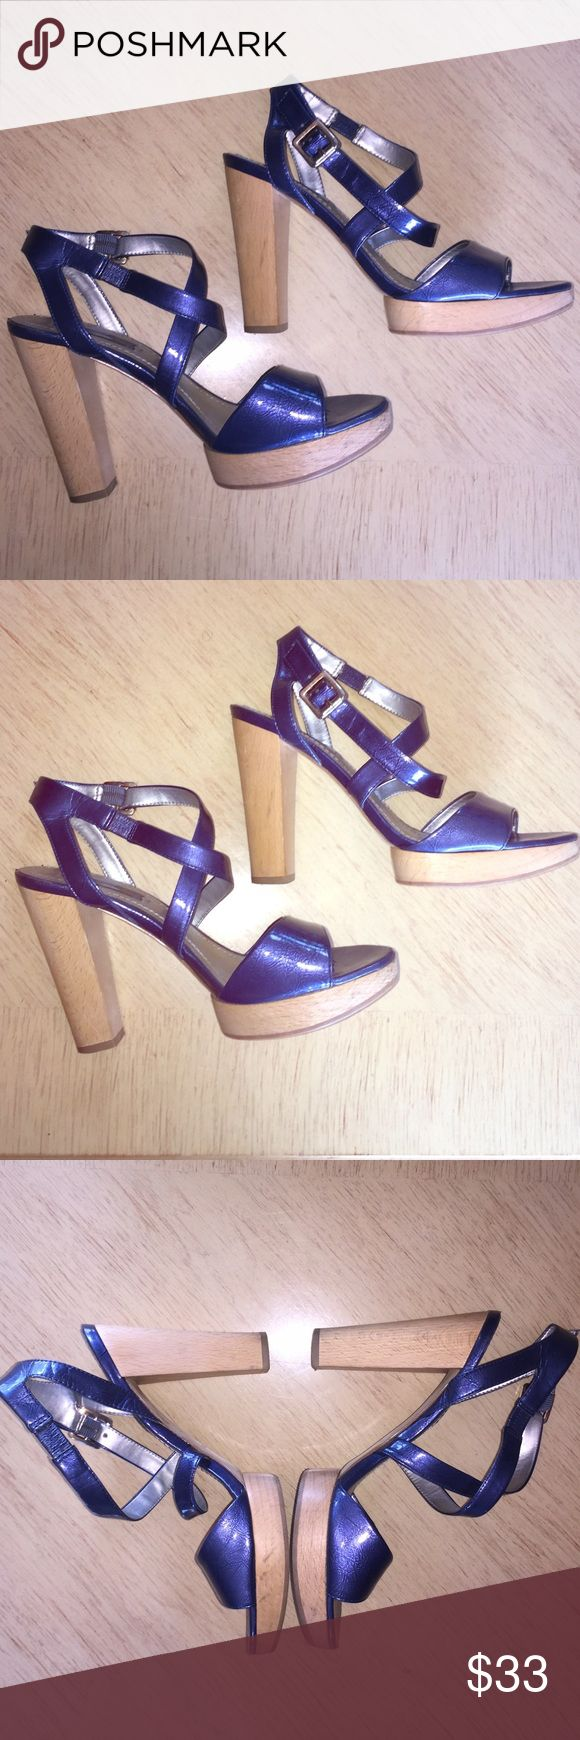 Nine West Strappy High Heels Super Cute Blue Strappy Nine West High Heels W/ Wooden Like Heel & Bottoms. In Ok Used Condition , Some Wear & Tear, but they Look Great On! Any Questions Please Ask! More Pics Upon Request. Nine West Shoes Heels